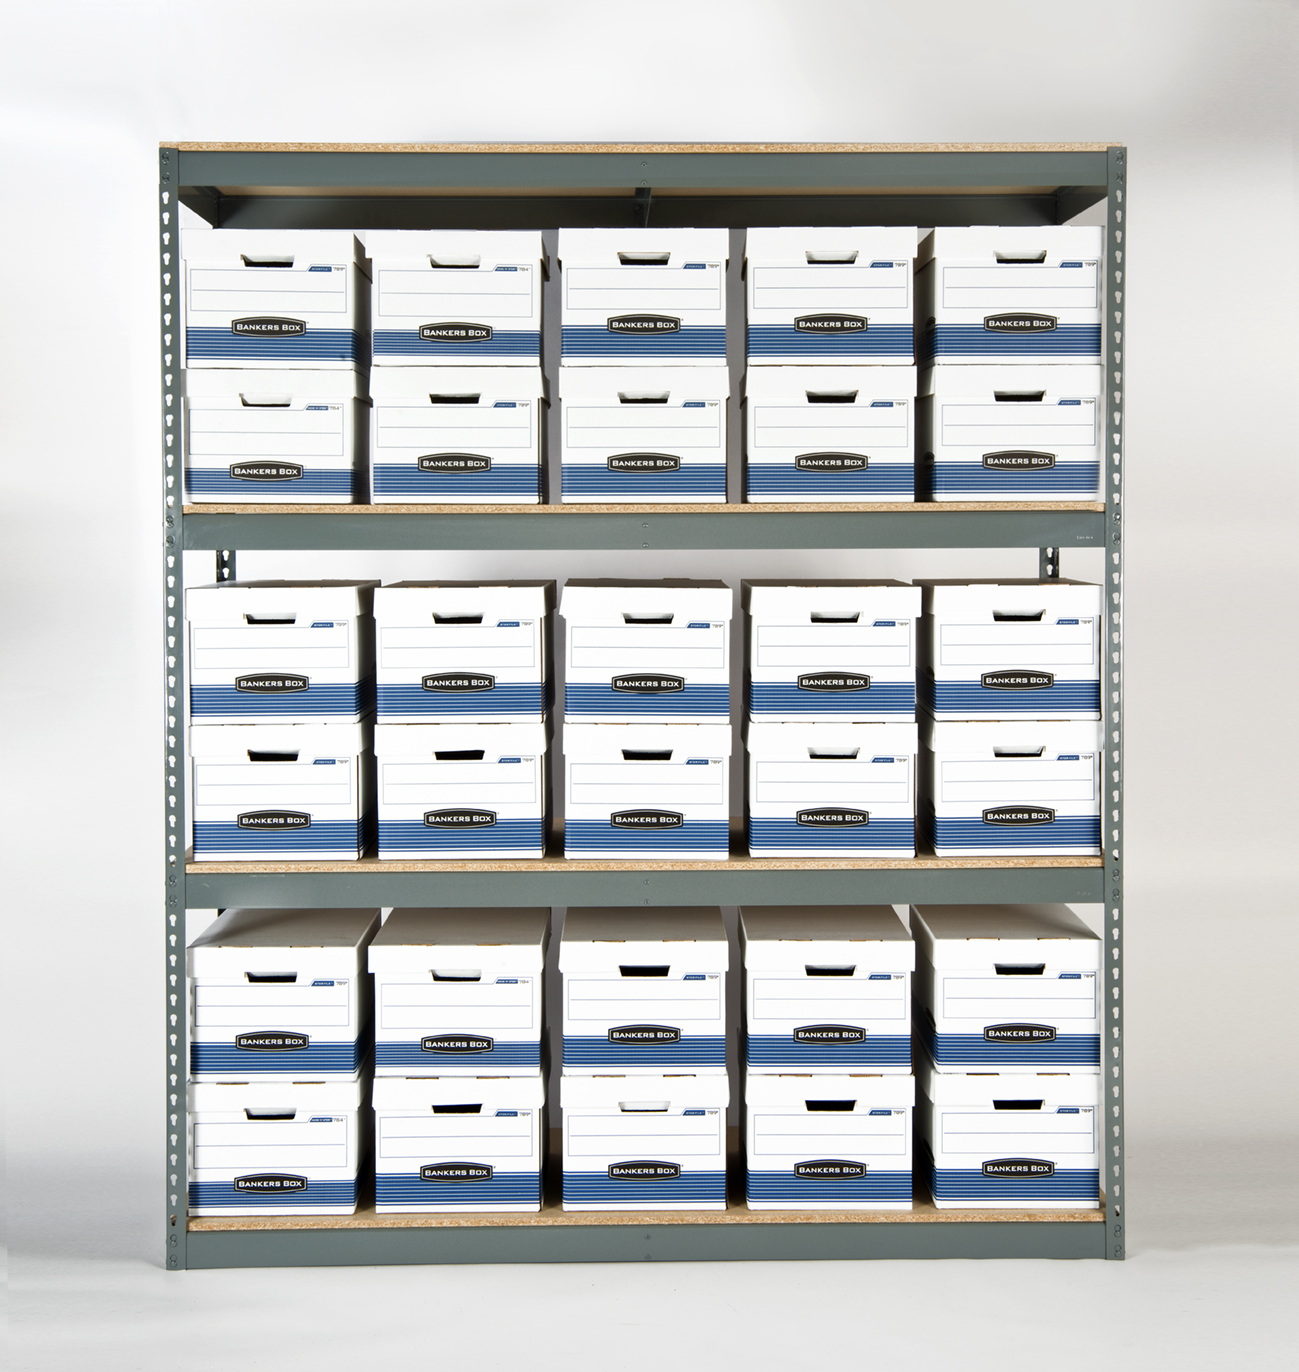 RiveTier II Record Archive Shelving